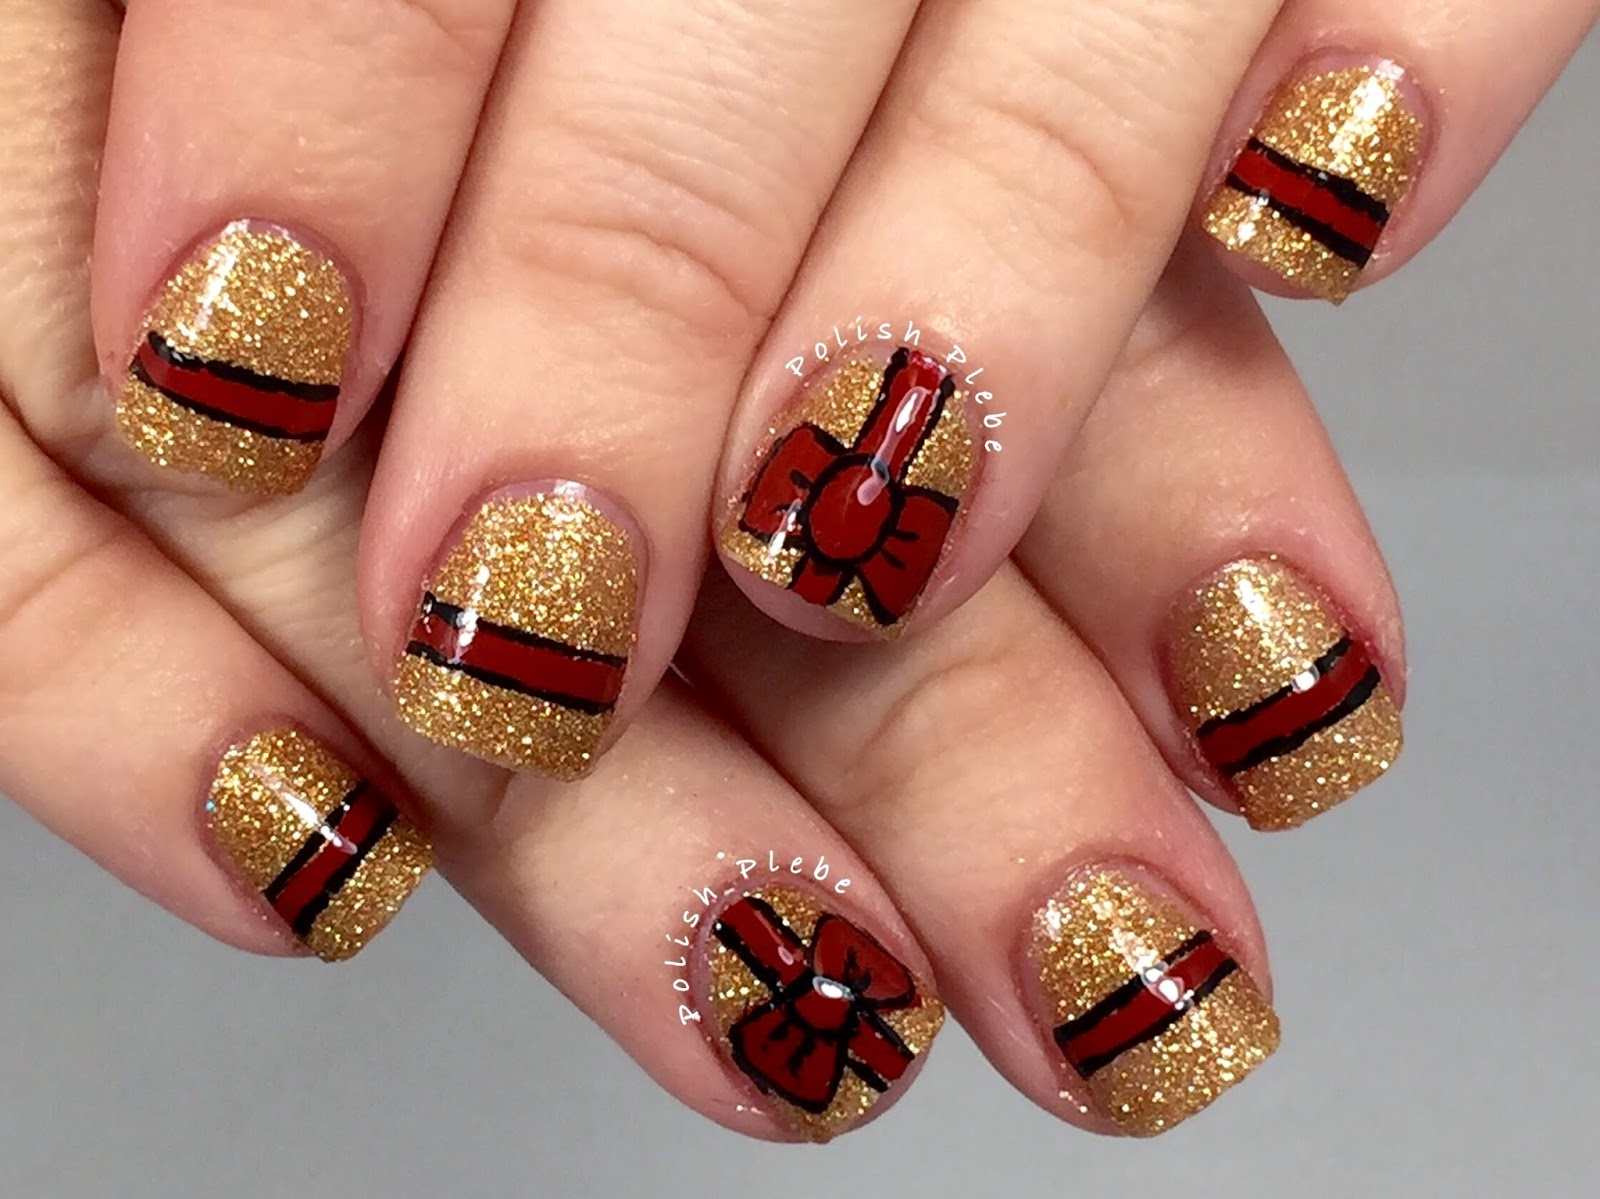 Nails Art: Glitzy Gift Wrapped Nails